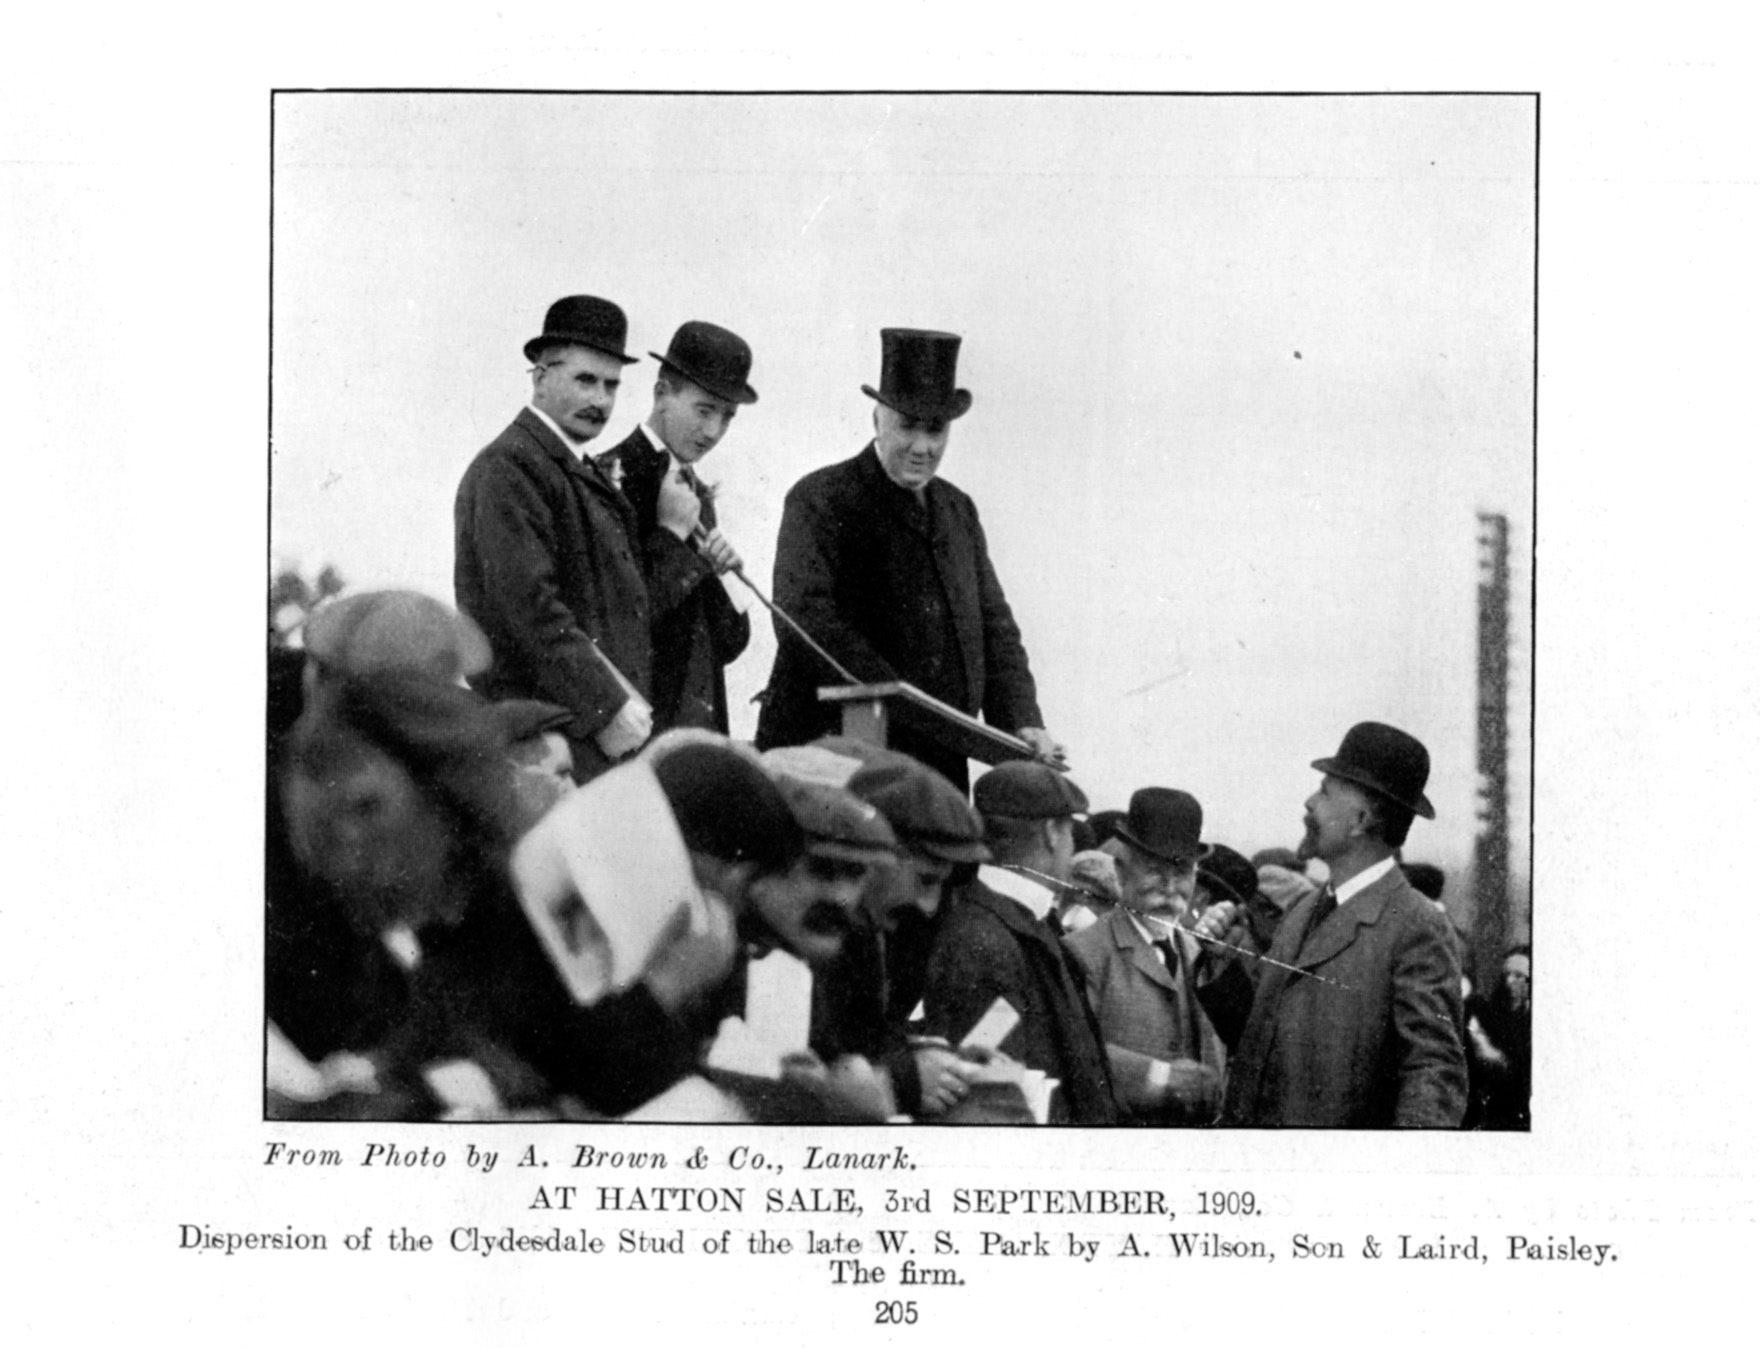 The Hatton sale of September, 1909 -- the dispersal of the Clydesdale stud of the late WS Park, by A Wilson, Sone and Laird, Paisley